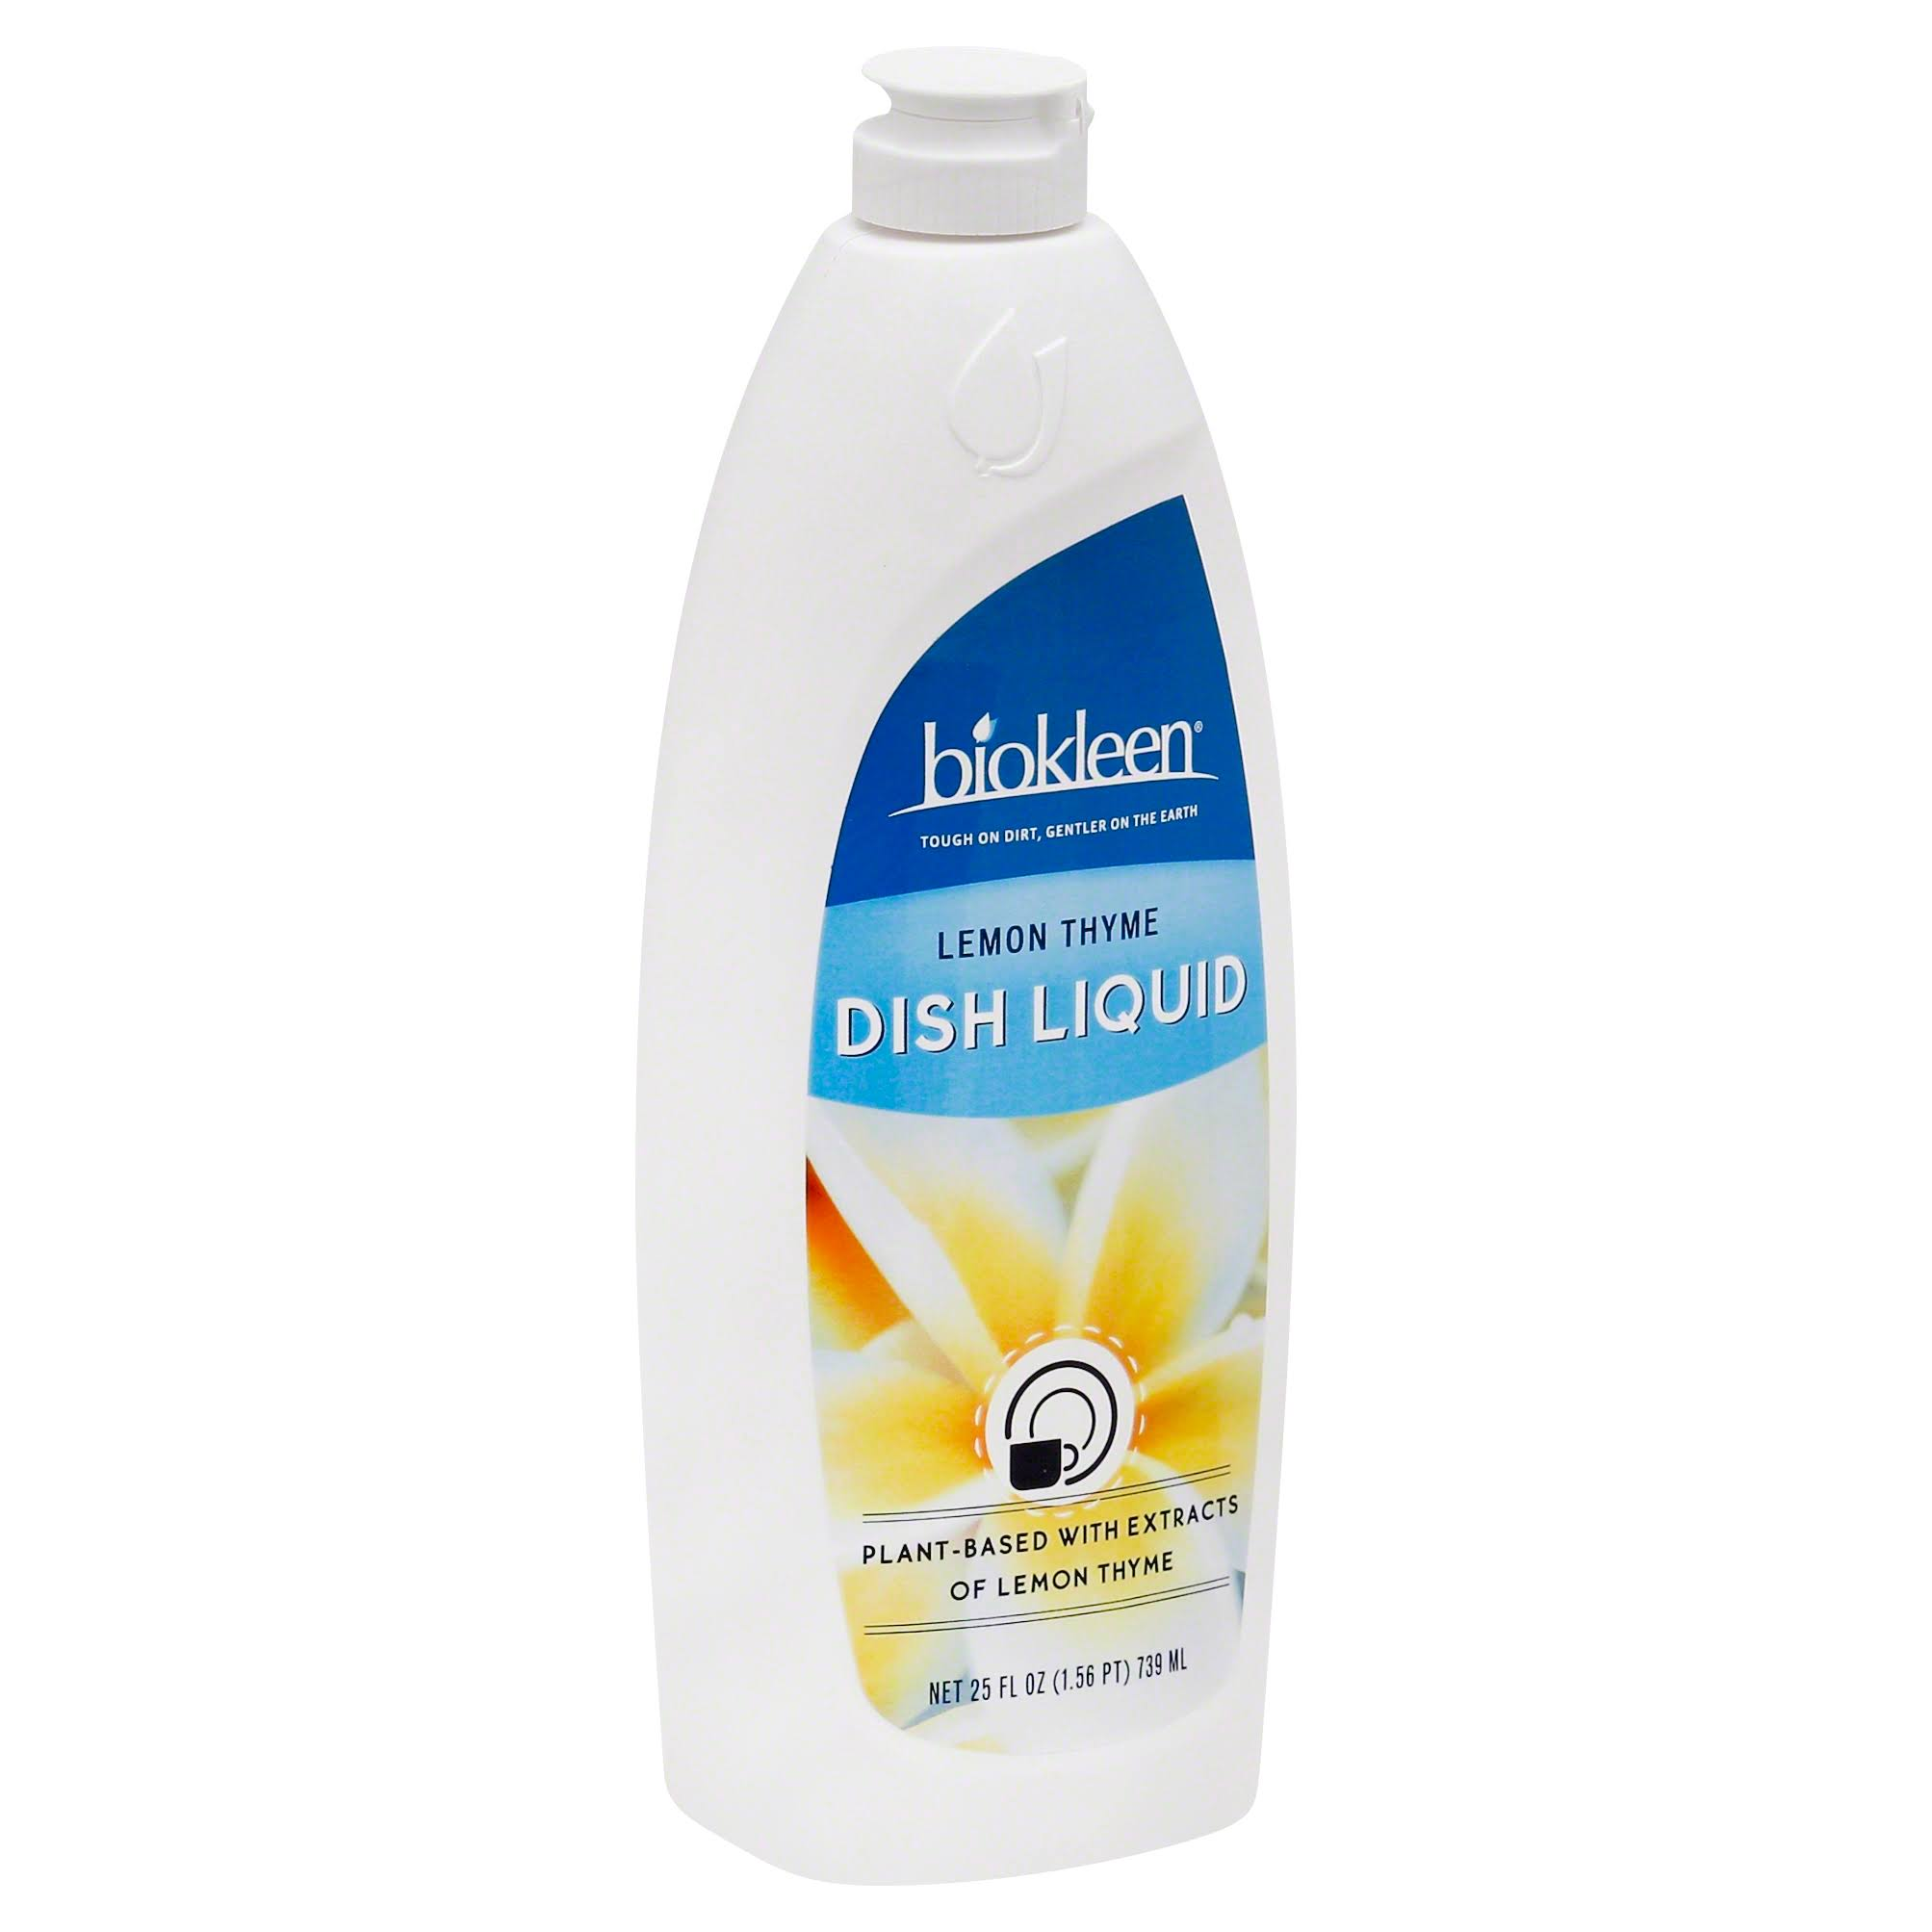 Biokleen Natural Dish Liquid - Lemon Thyme